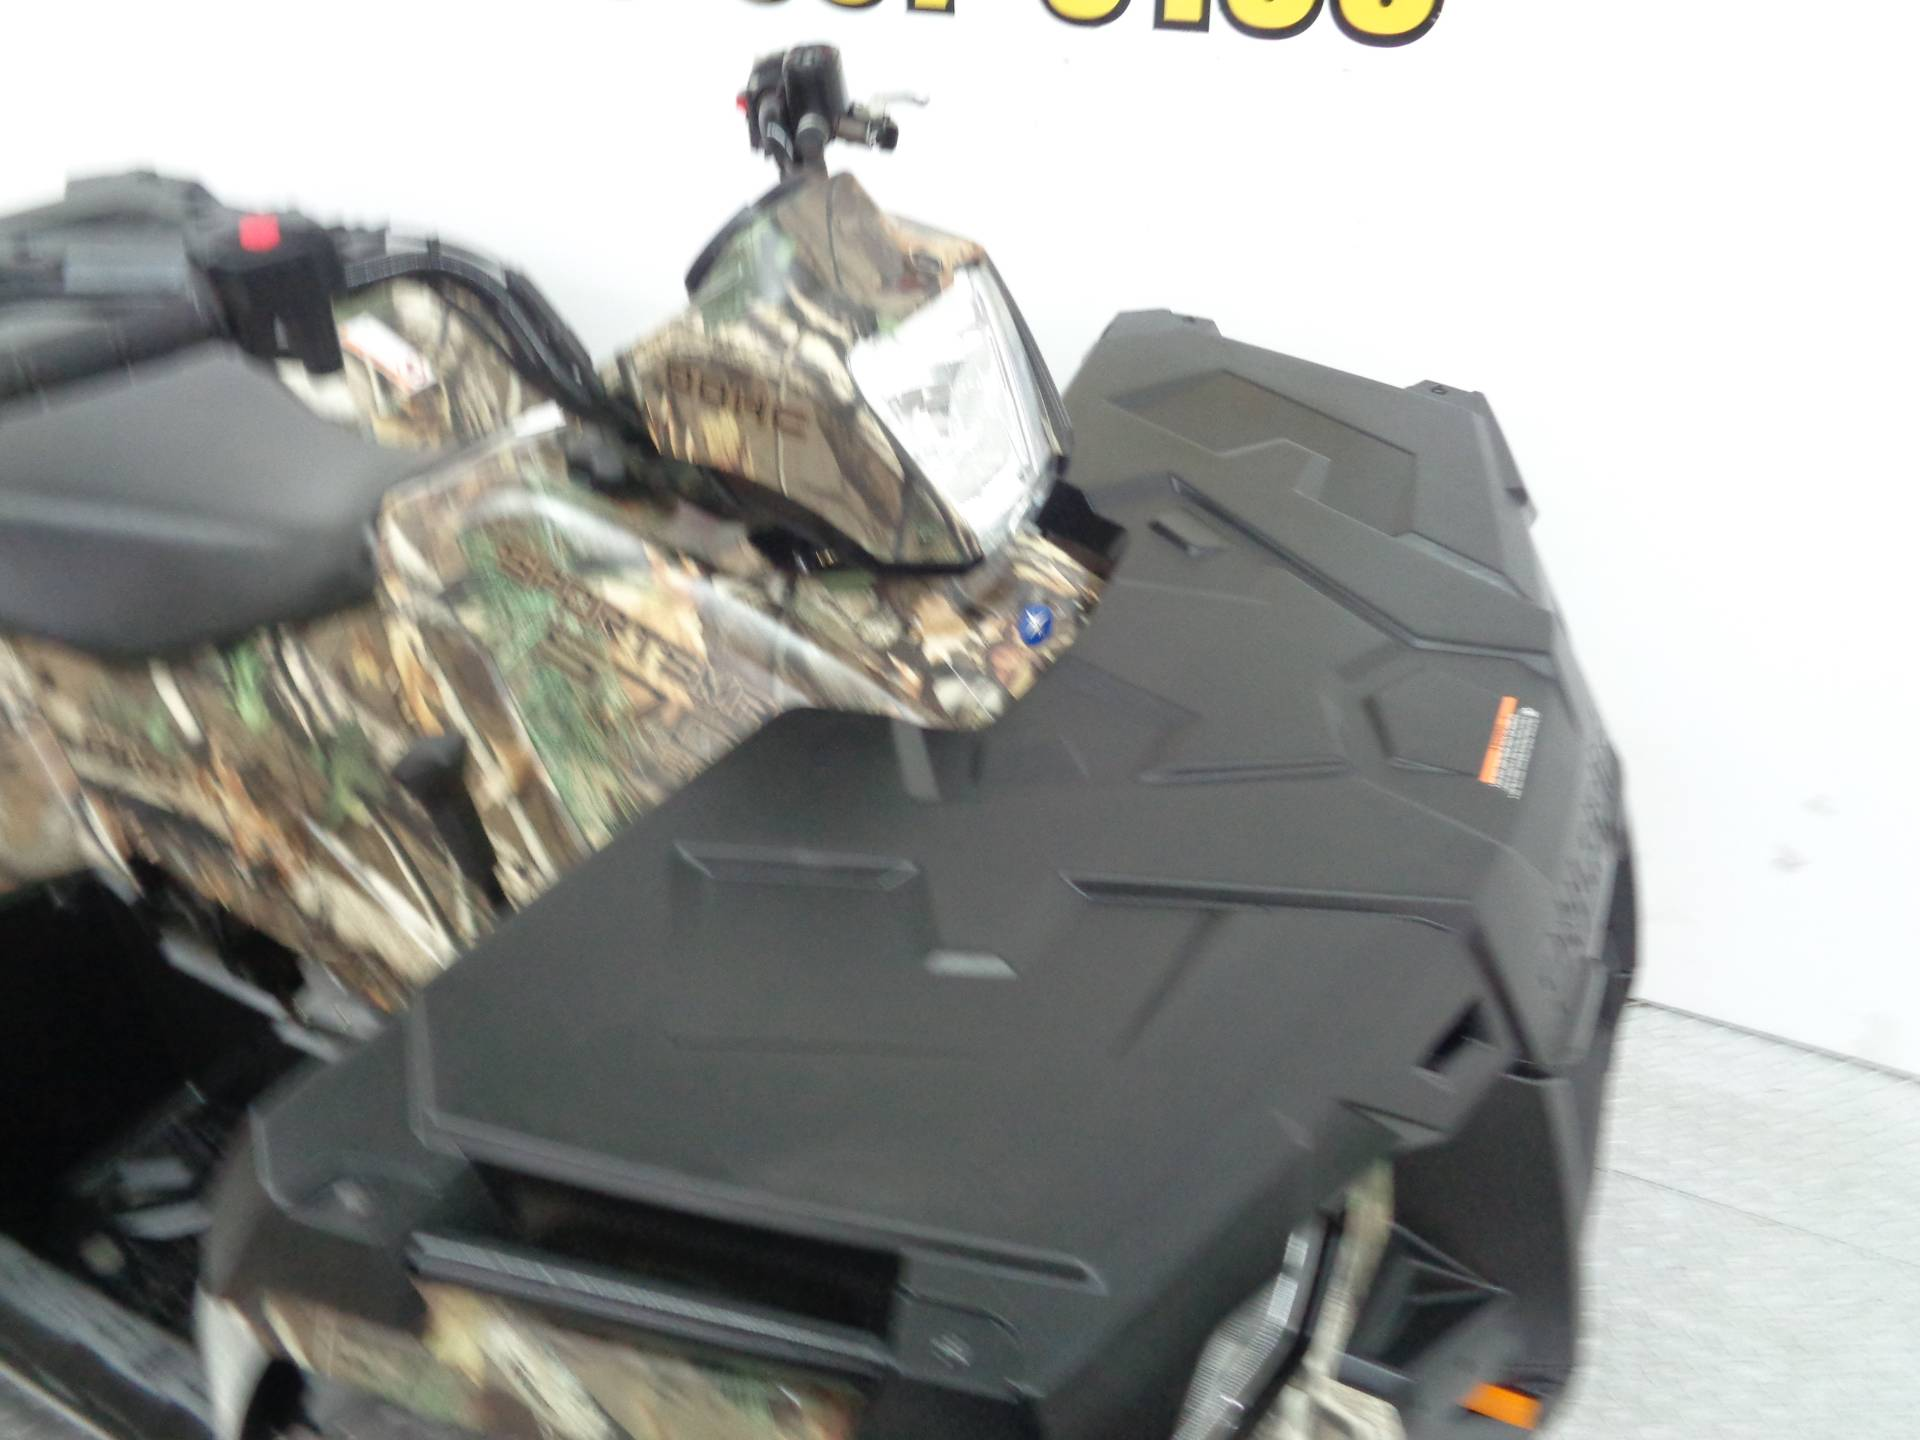 2015 Polaris Sportsman® 570 in Tulsa, Oklahoma - Photo 3